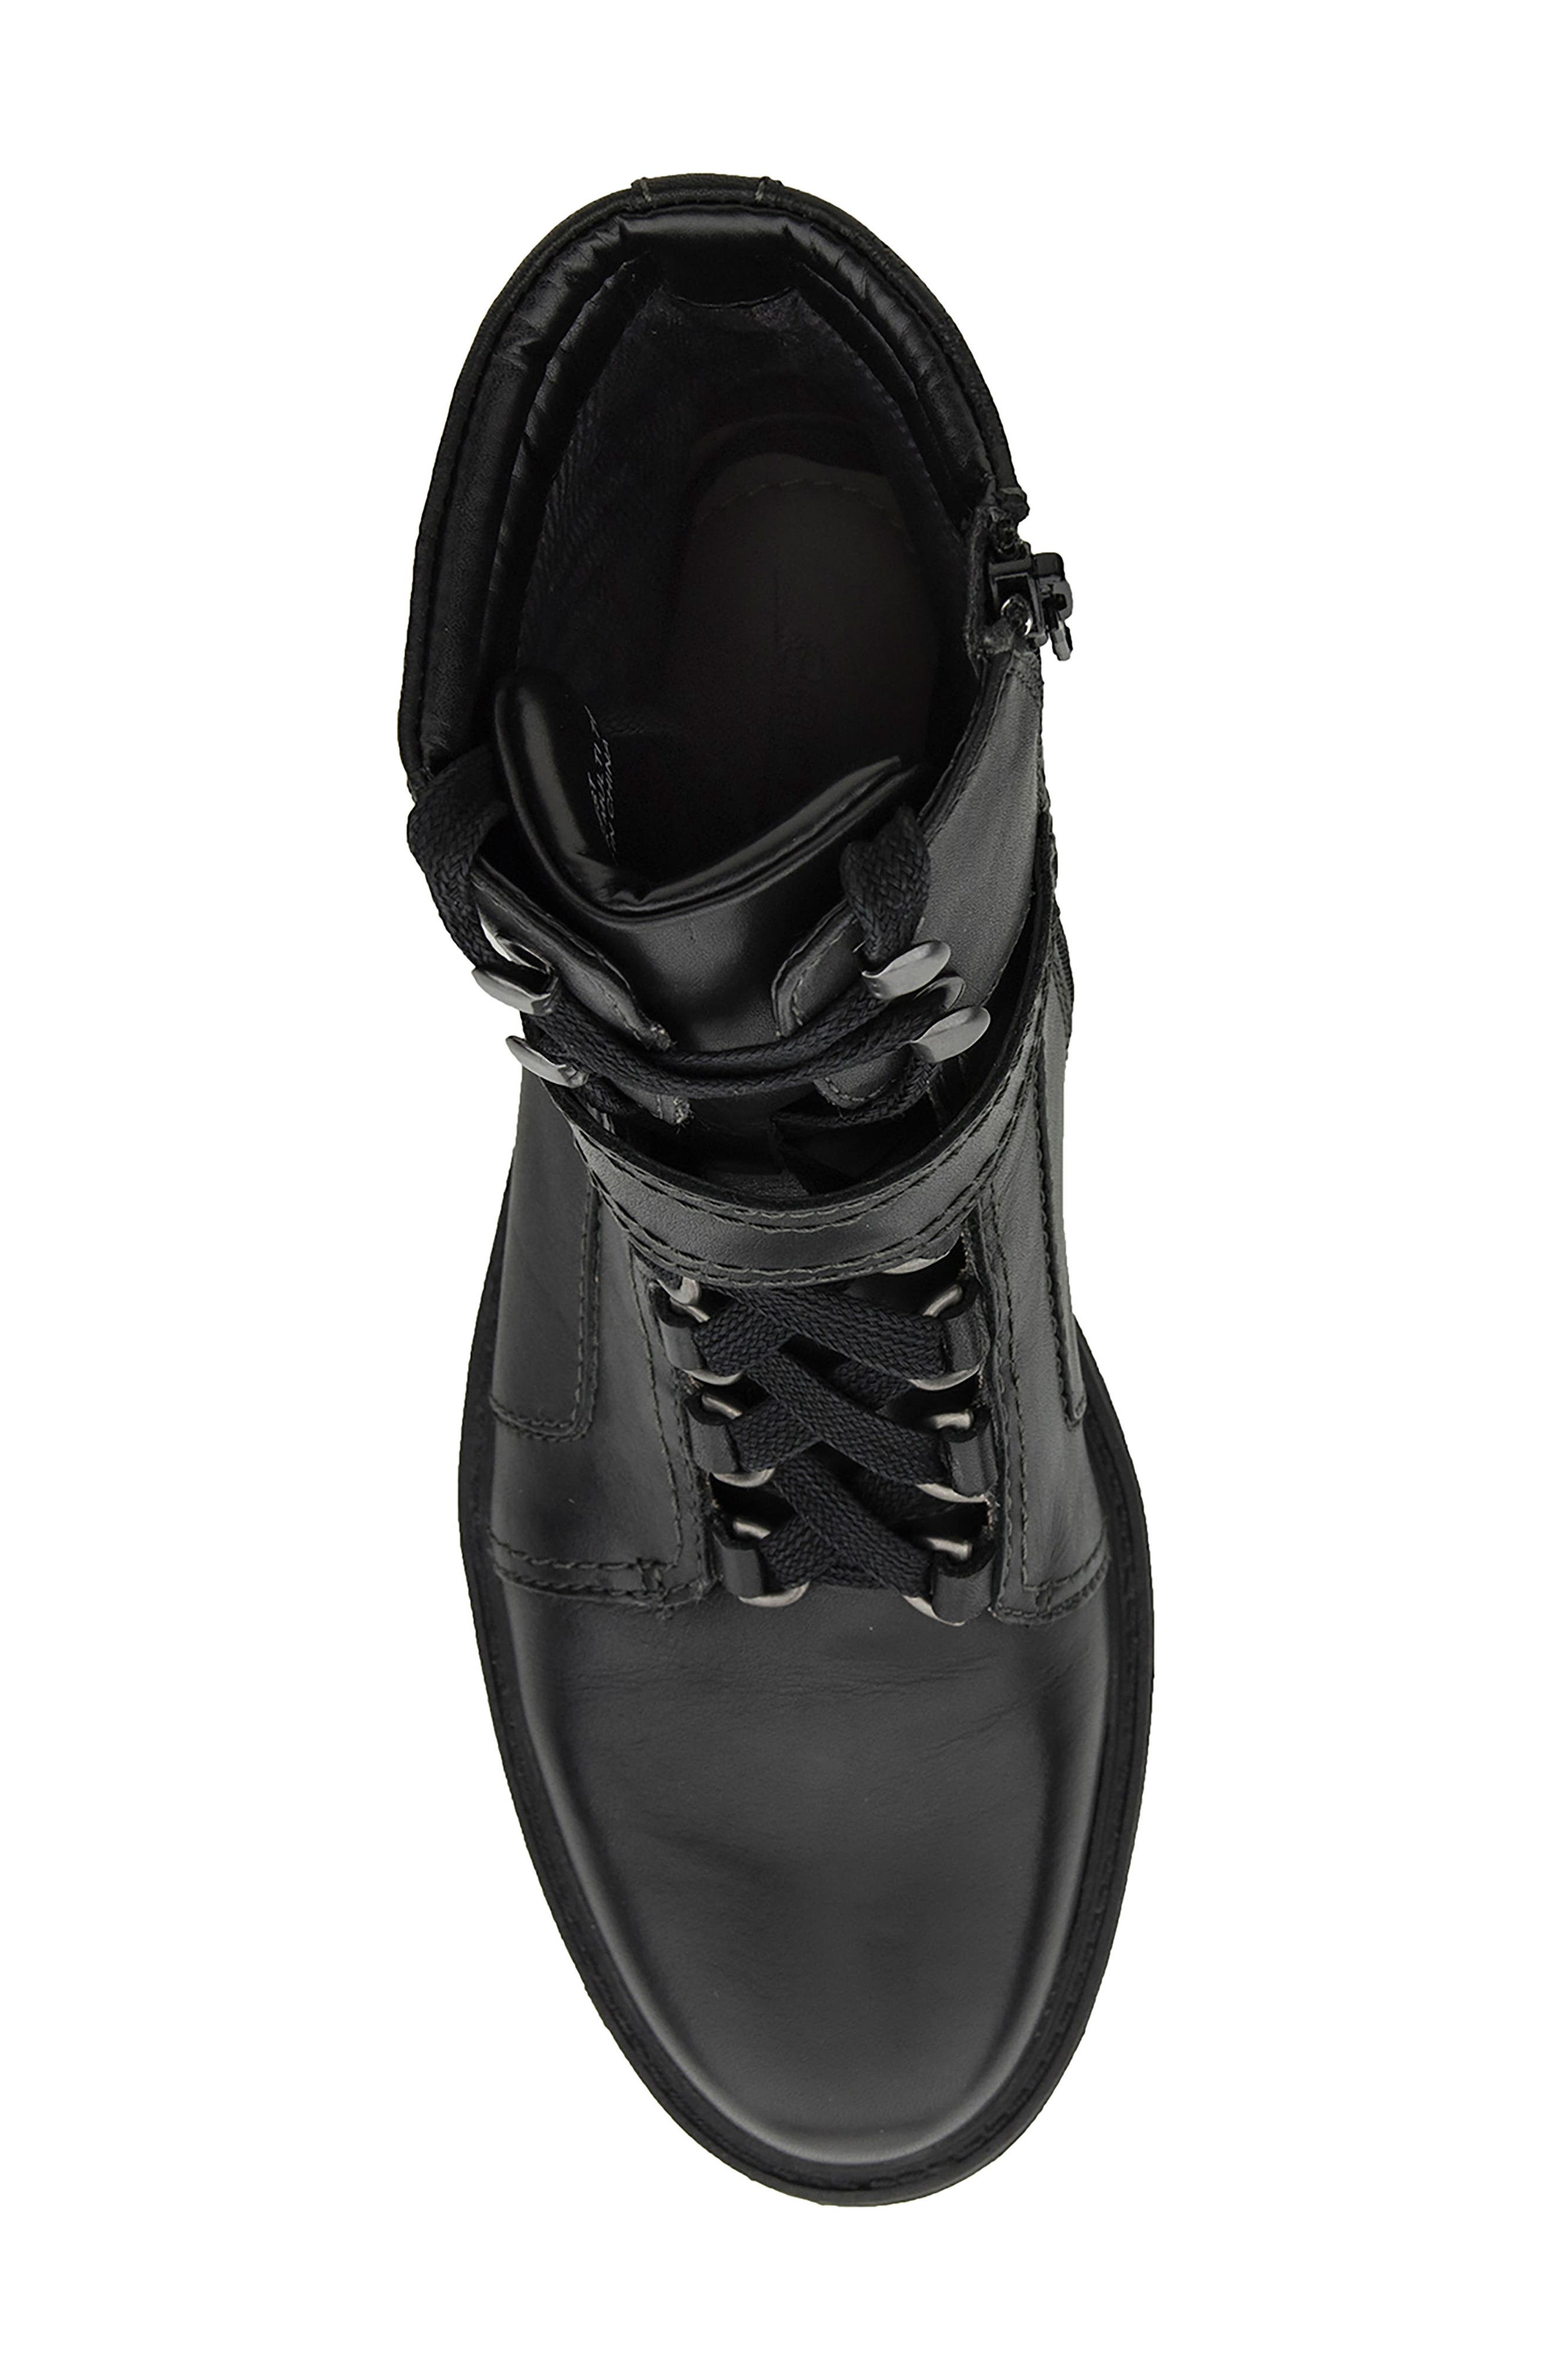 Everest Lace-Up Boot,                             Alternate thumbnail 5, color,                             Black Leather